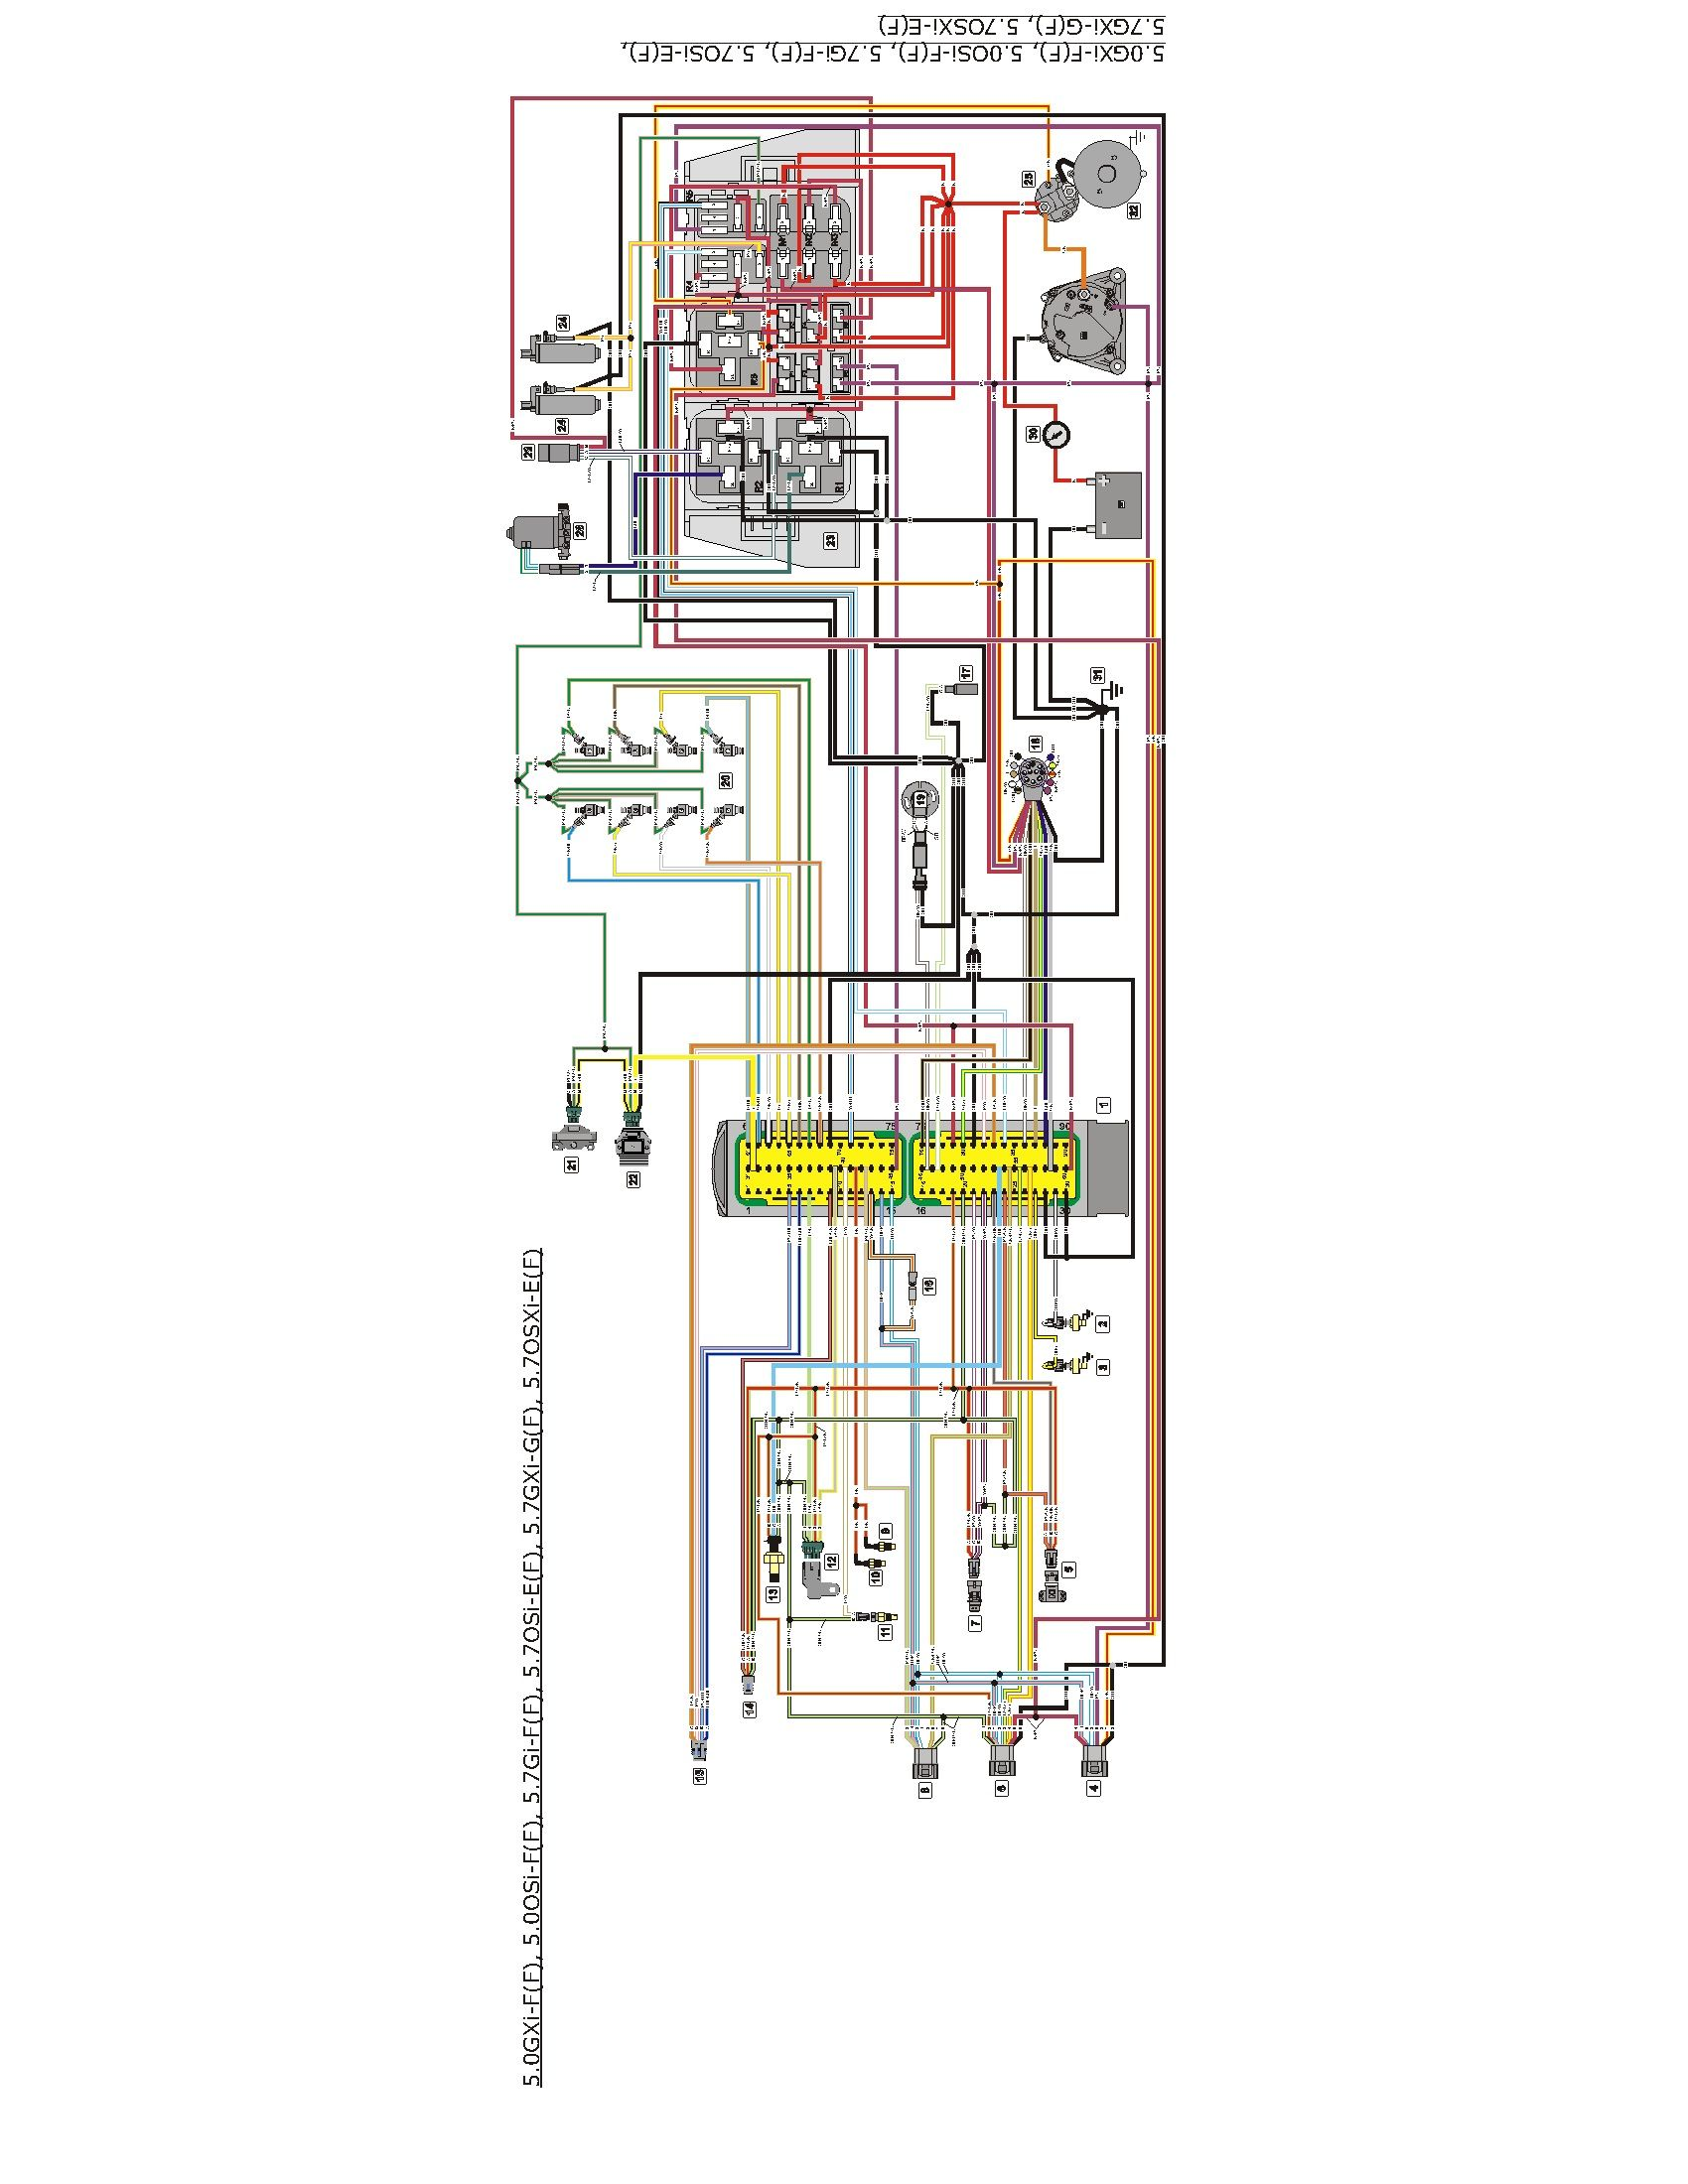 medium resolution of free boat wiring schematics wiring diagramvolvo penta 5 7 engine wiring diagram boat volvo boat